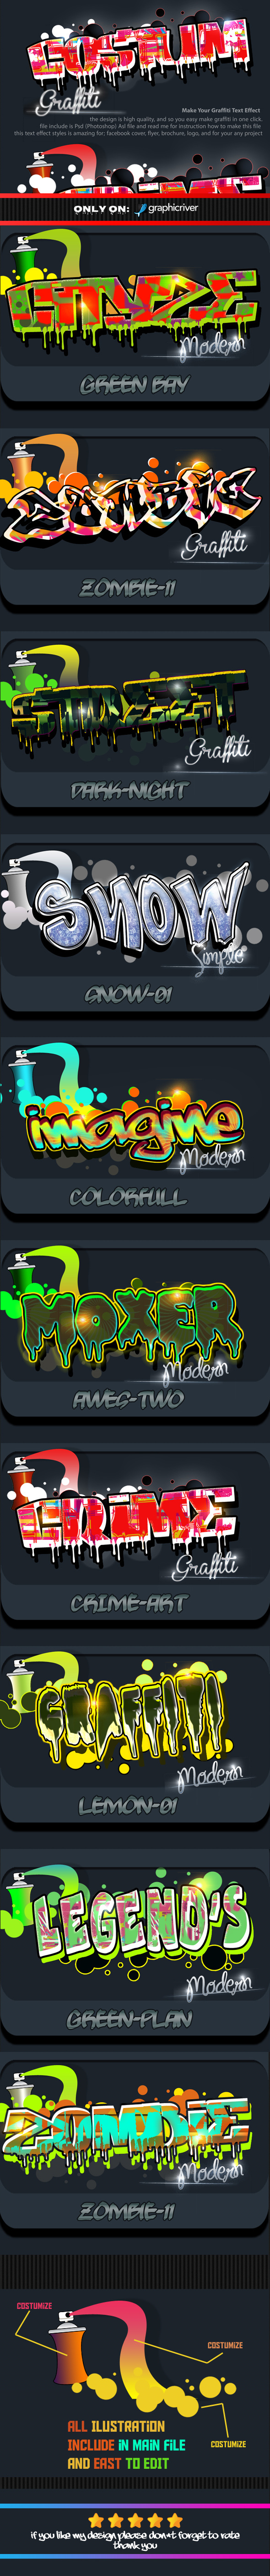 Costum Graffiti Text Effect Styles Vol 2 - Text Effects Styles